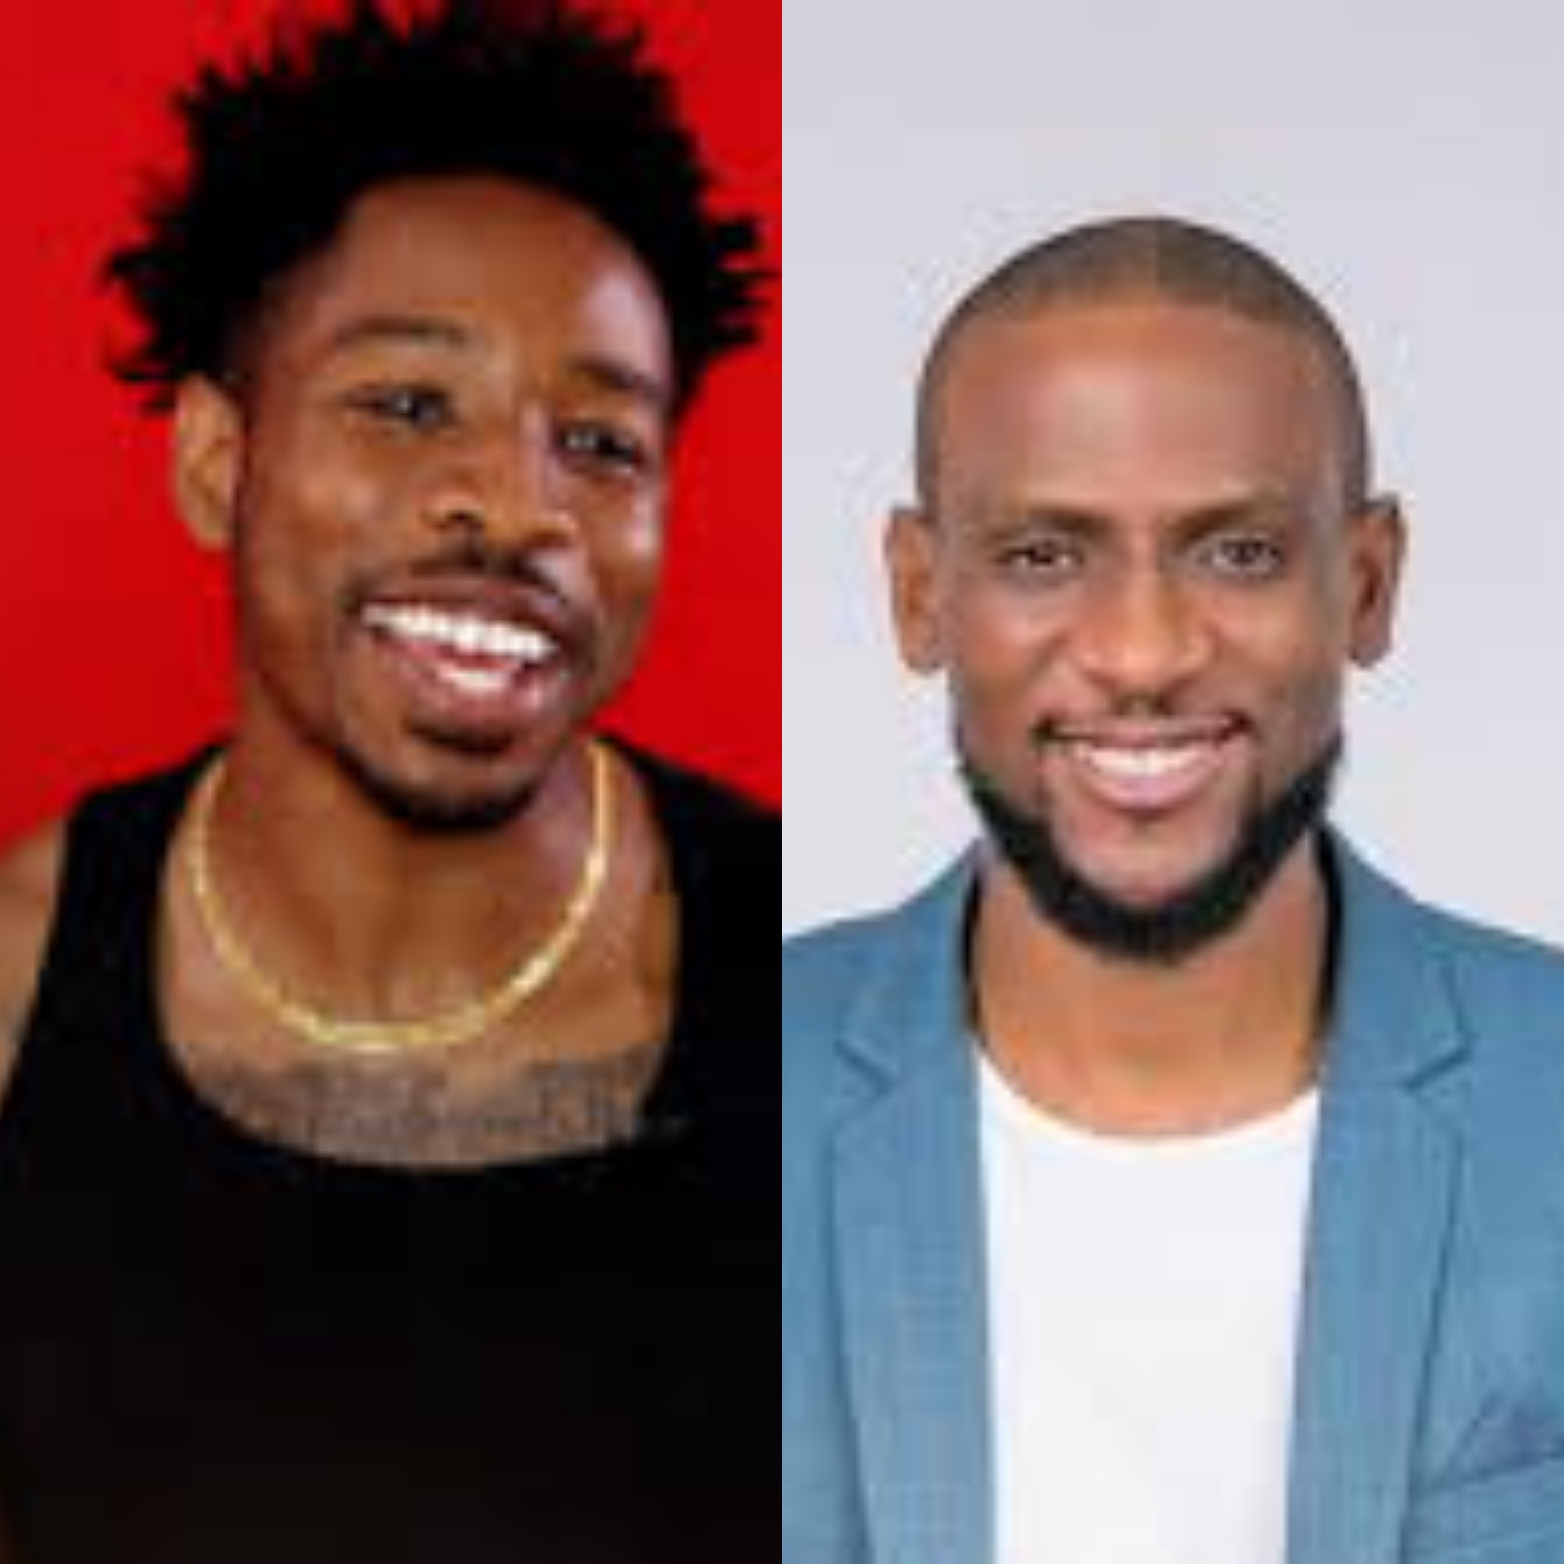 IMG 20190826 202132 - BBNaija: Omashola Advises Ike Not To Rerun For Head Of House With Khafi